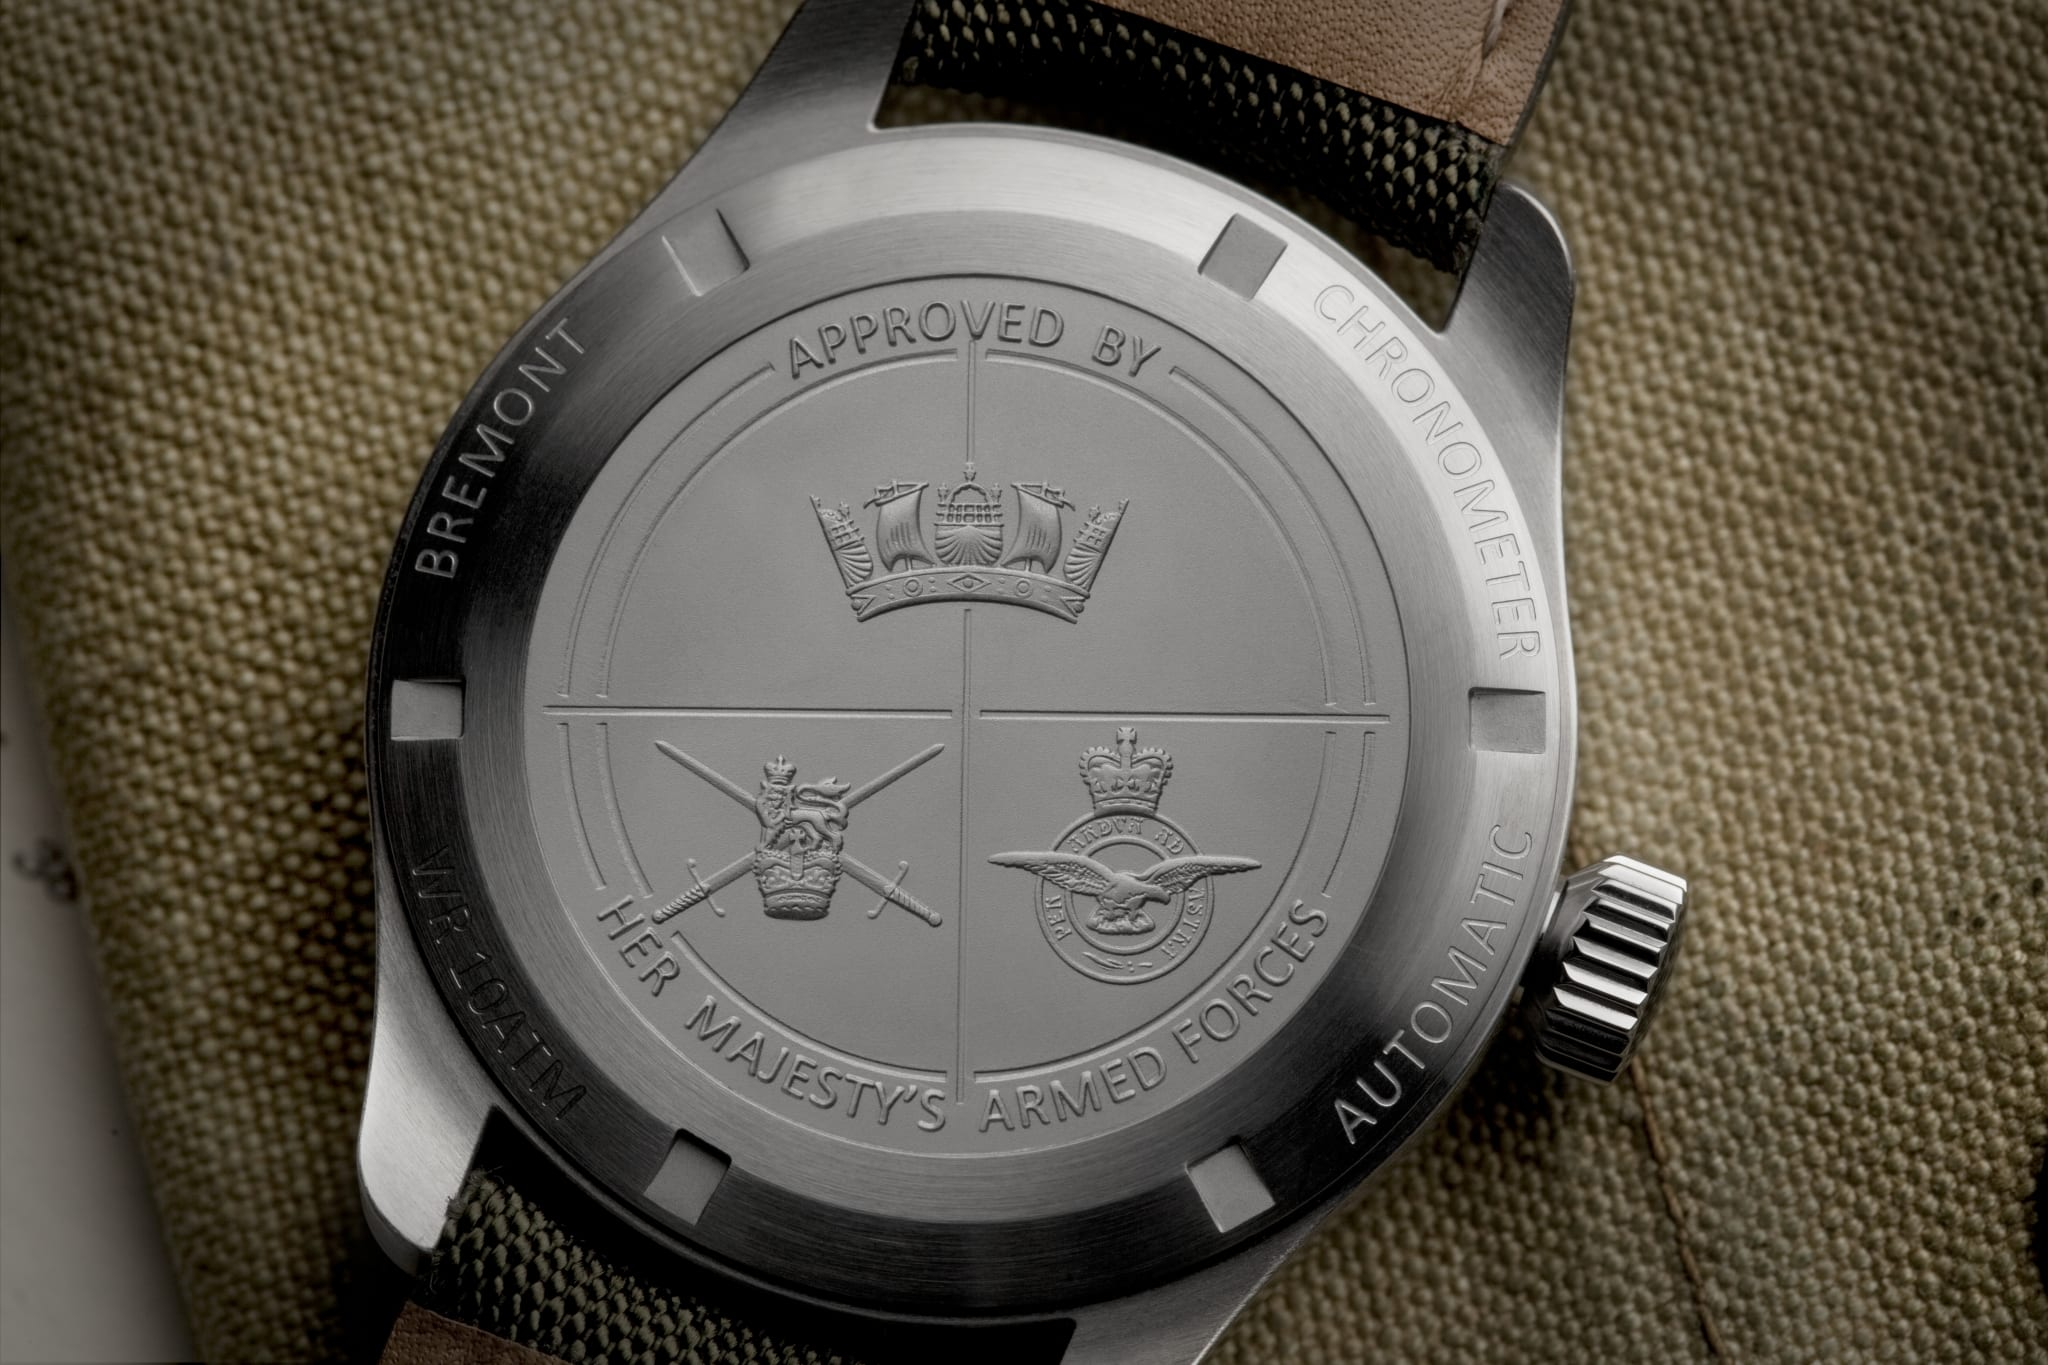 Bremont secures clearance for watches carrying Navy, Army and Air